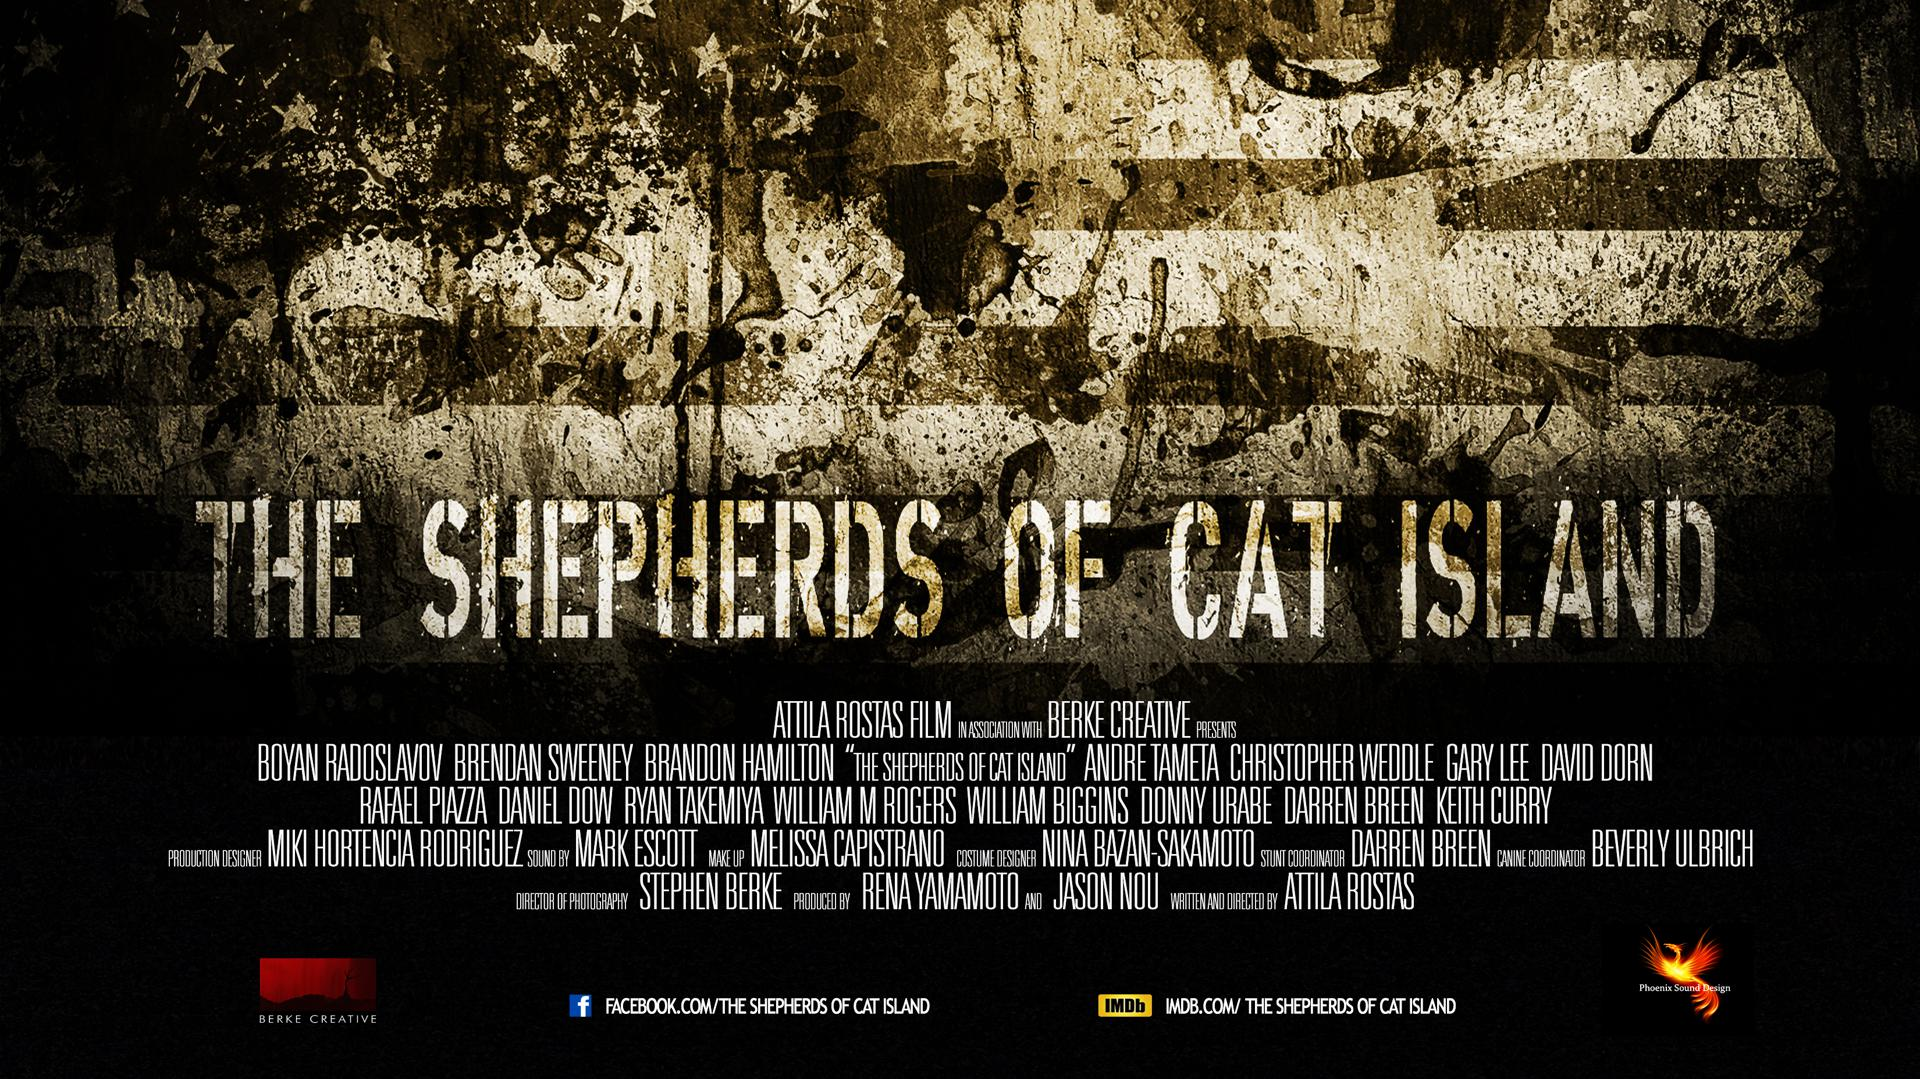 The Shepherds of Cat Island